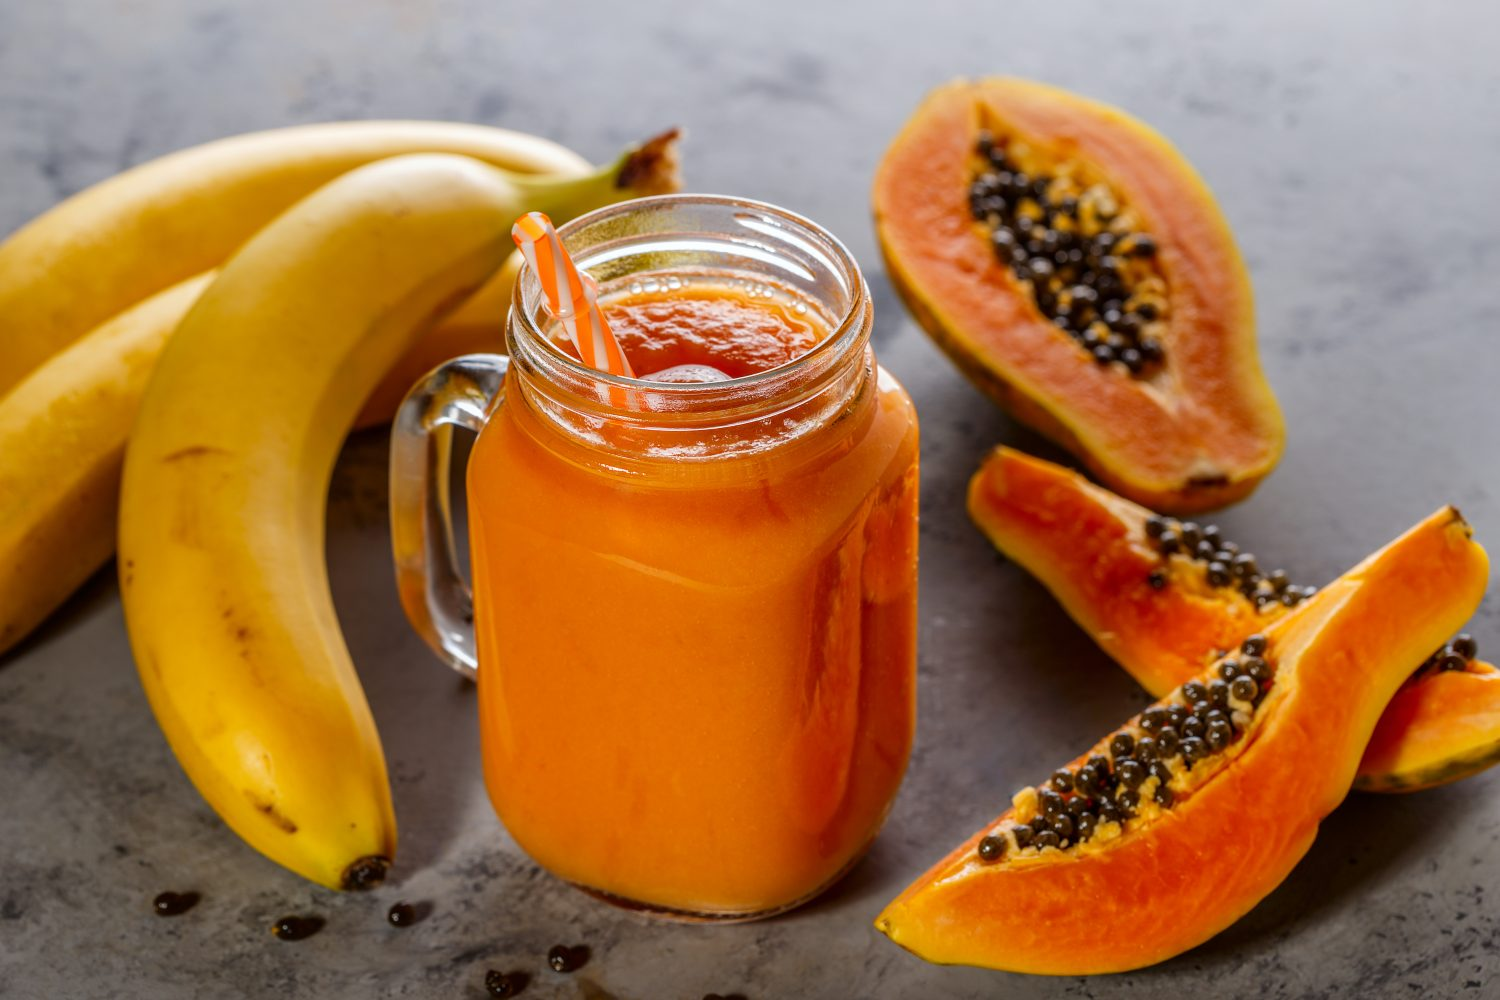 Papaya-banaan-tropicablend-smoothie